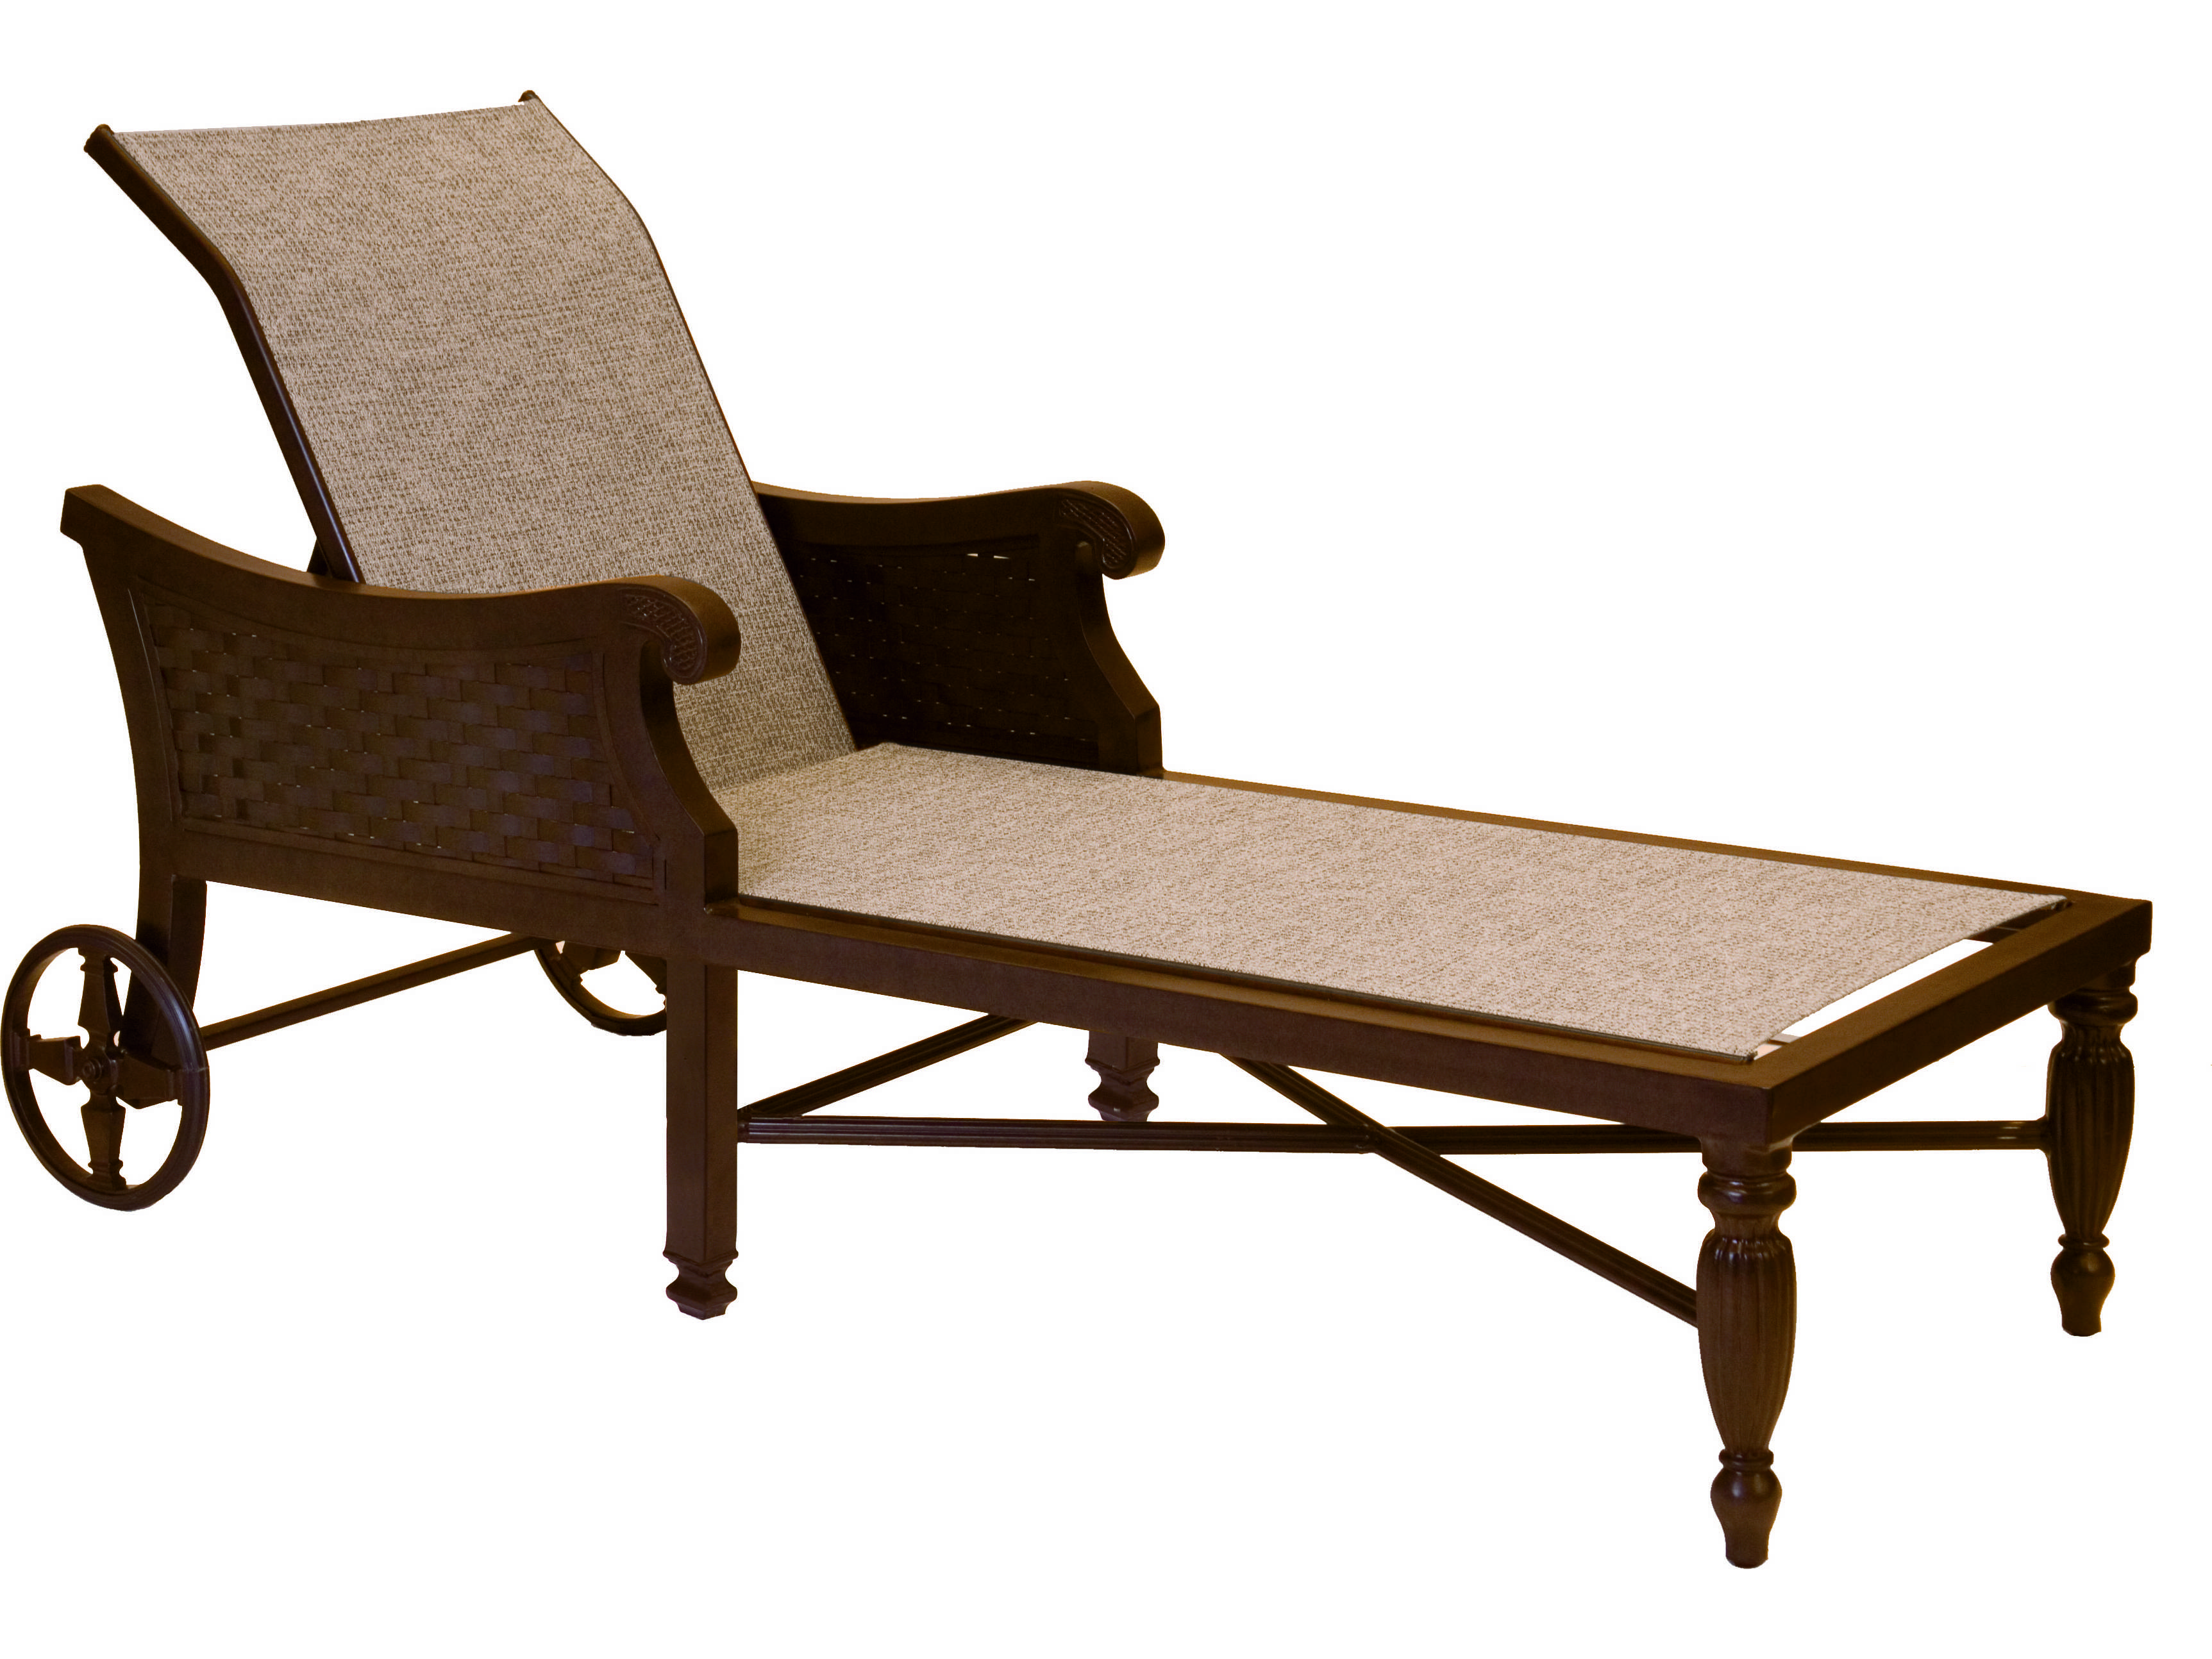 Castelle jakarta sling cast aluminum adjustable chaise for Cast aluminum chaise lounge